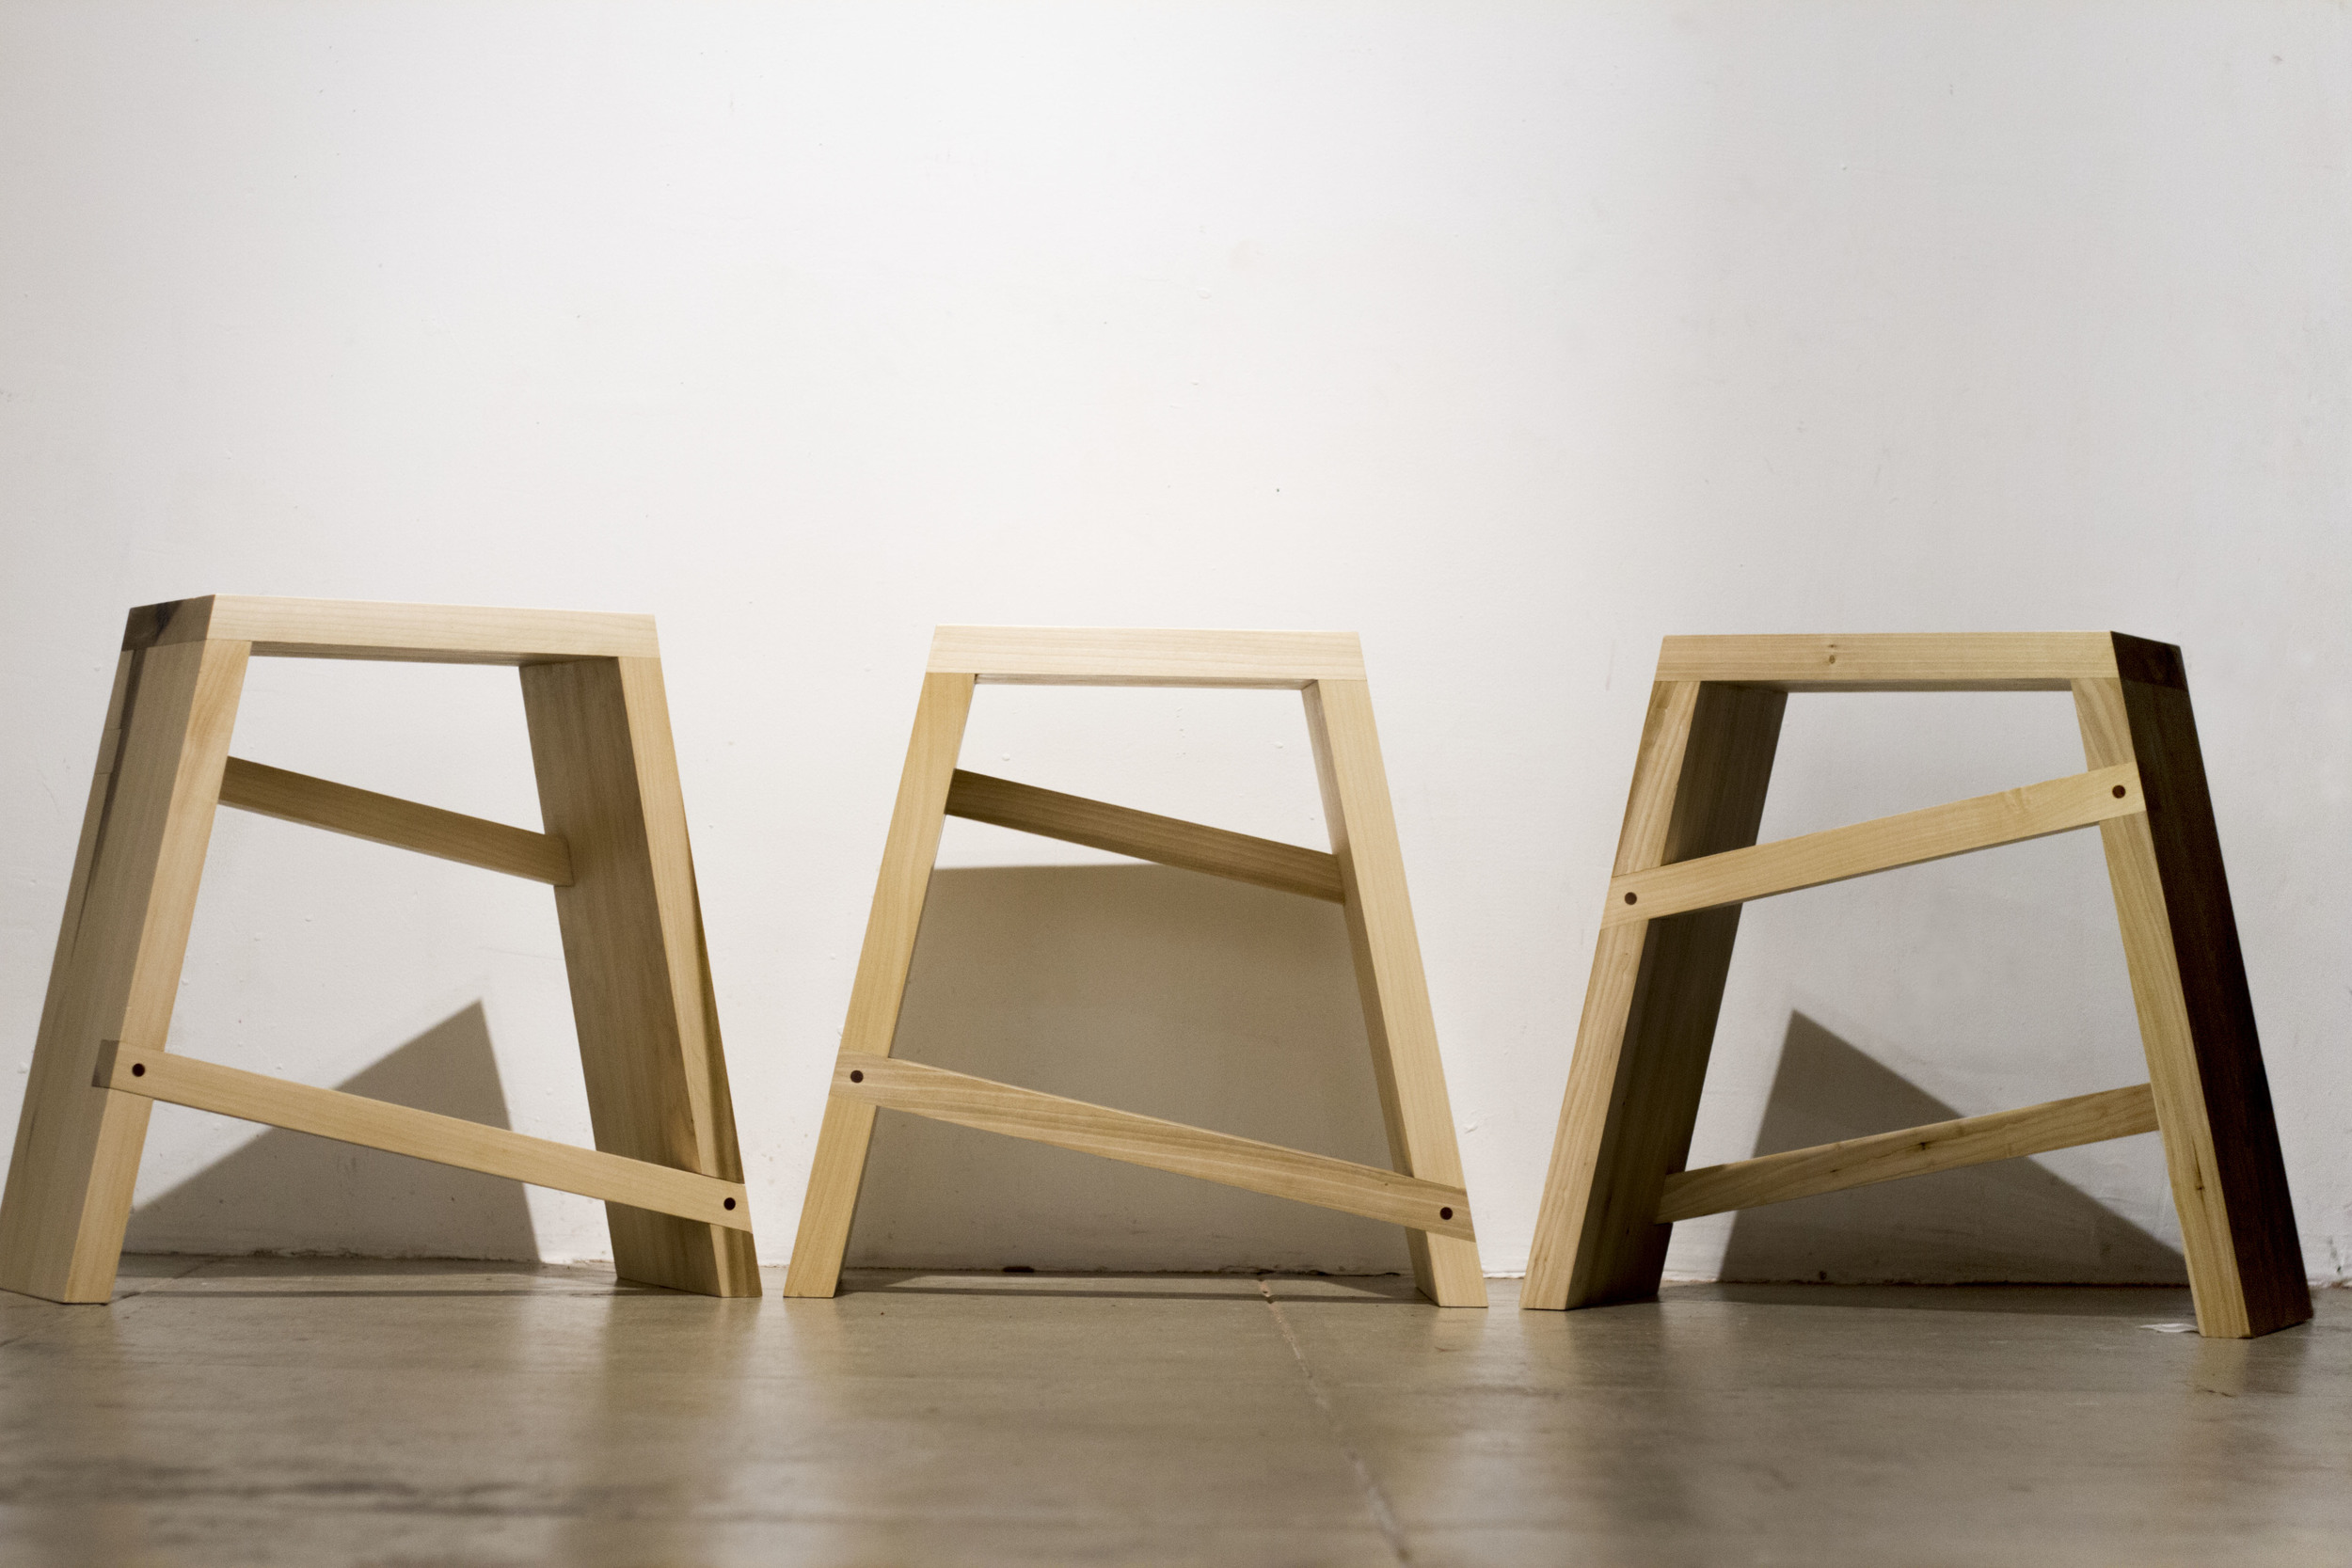 Stool Set-Poplar. 2013.  This set of 3 stools was designed and built for the new studio art building at Pomona College.